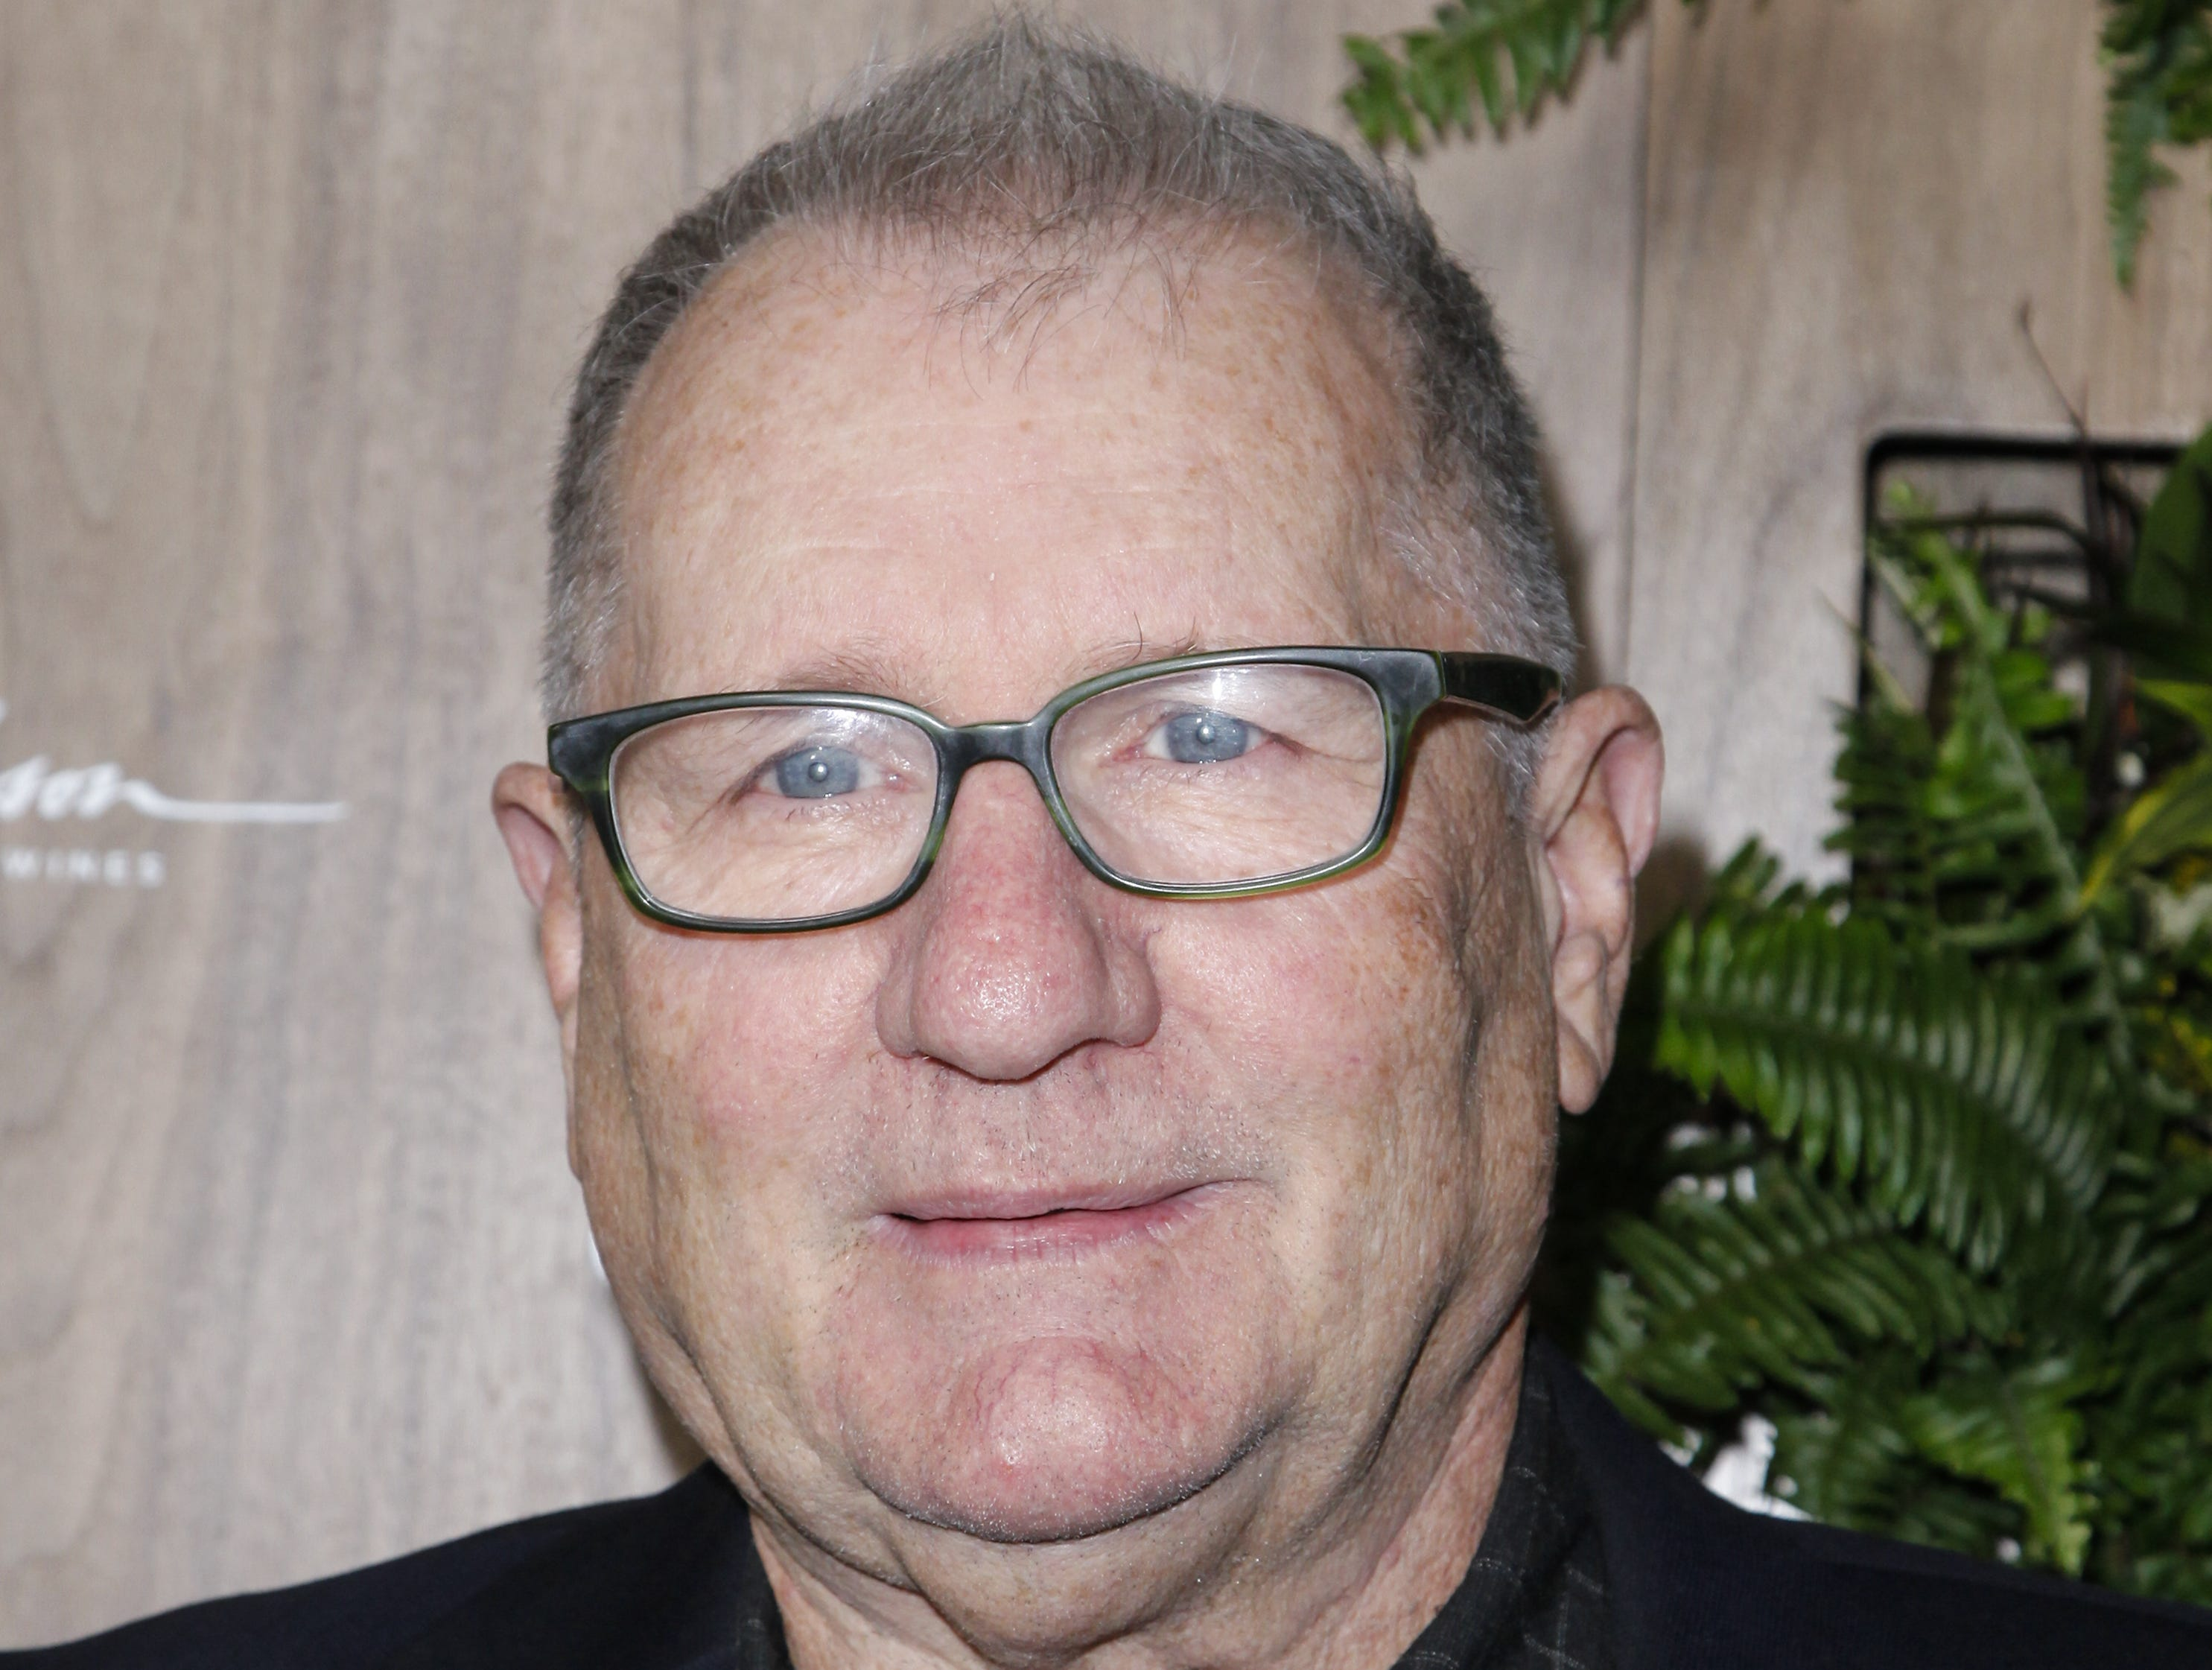 LOS ANGELES, CALIFORNIA - FEBRUARY 20: Ed O'Neill attends Global Green's 2019 Pre-Oscar Gala at Four Seasons Hotel Los Angeles at Beverly Hills on February 20, 2019 in Los Angeles, California. (Photo by Tibrina Hobson/WireImage) ORG XMIT: 775298110 ORIG FILE ID: 1131081061